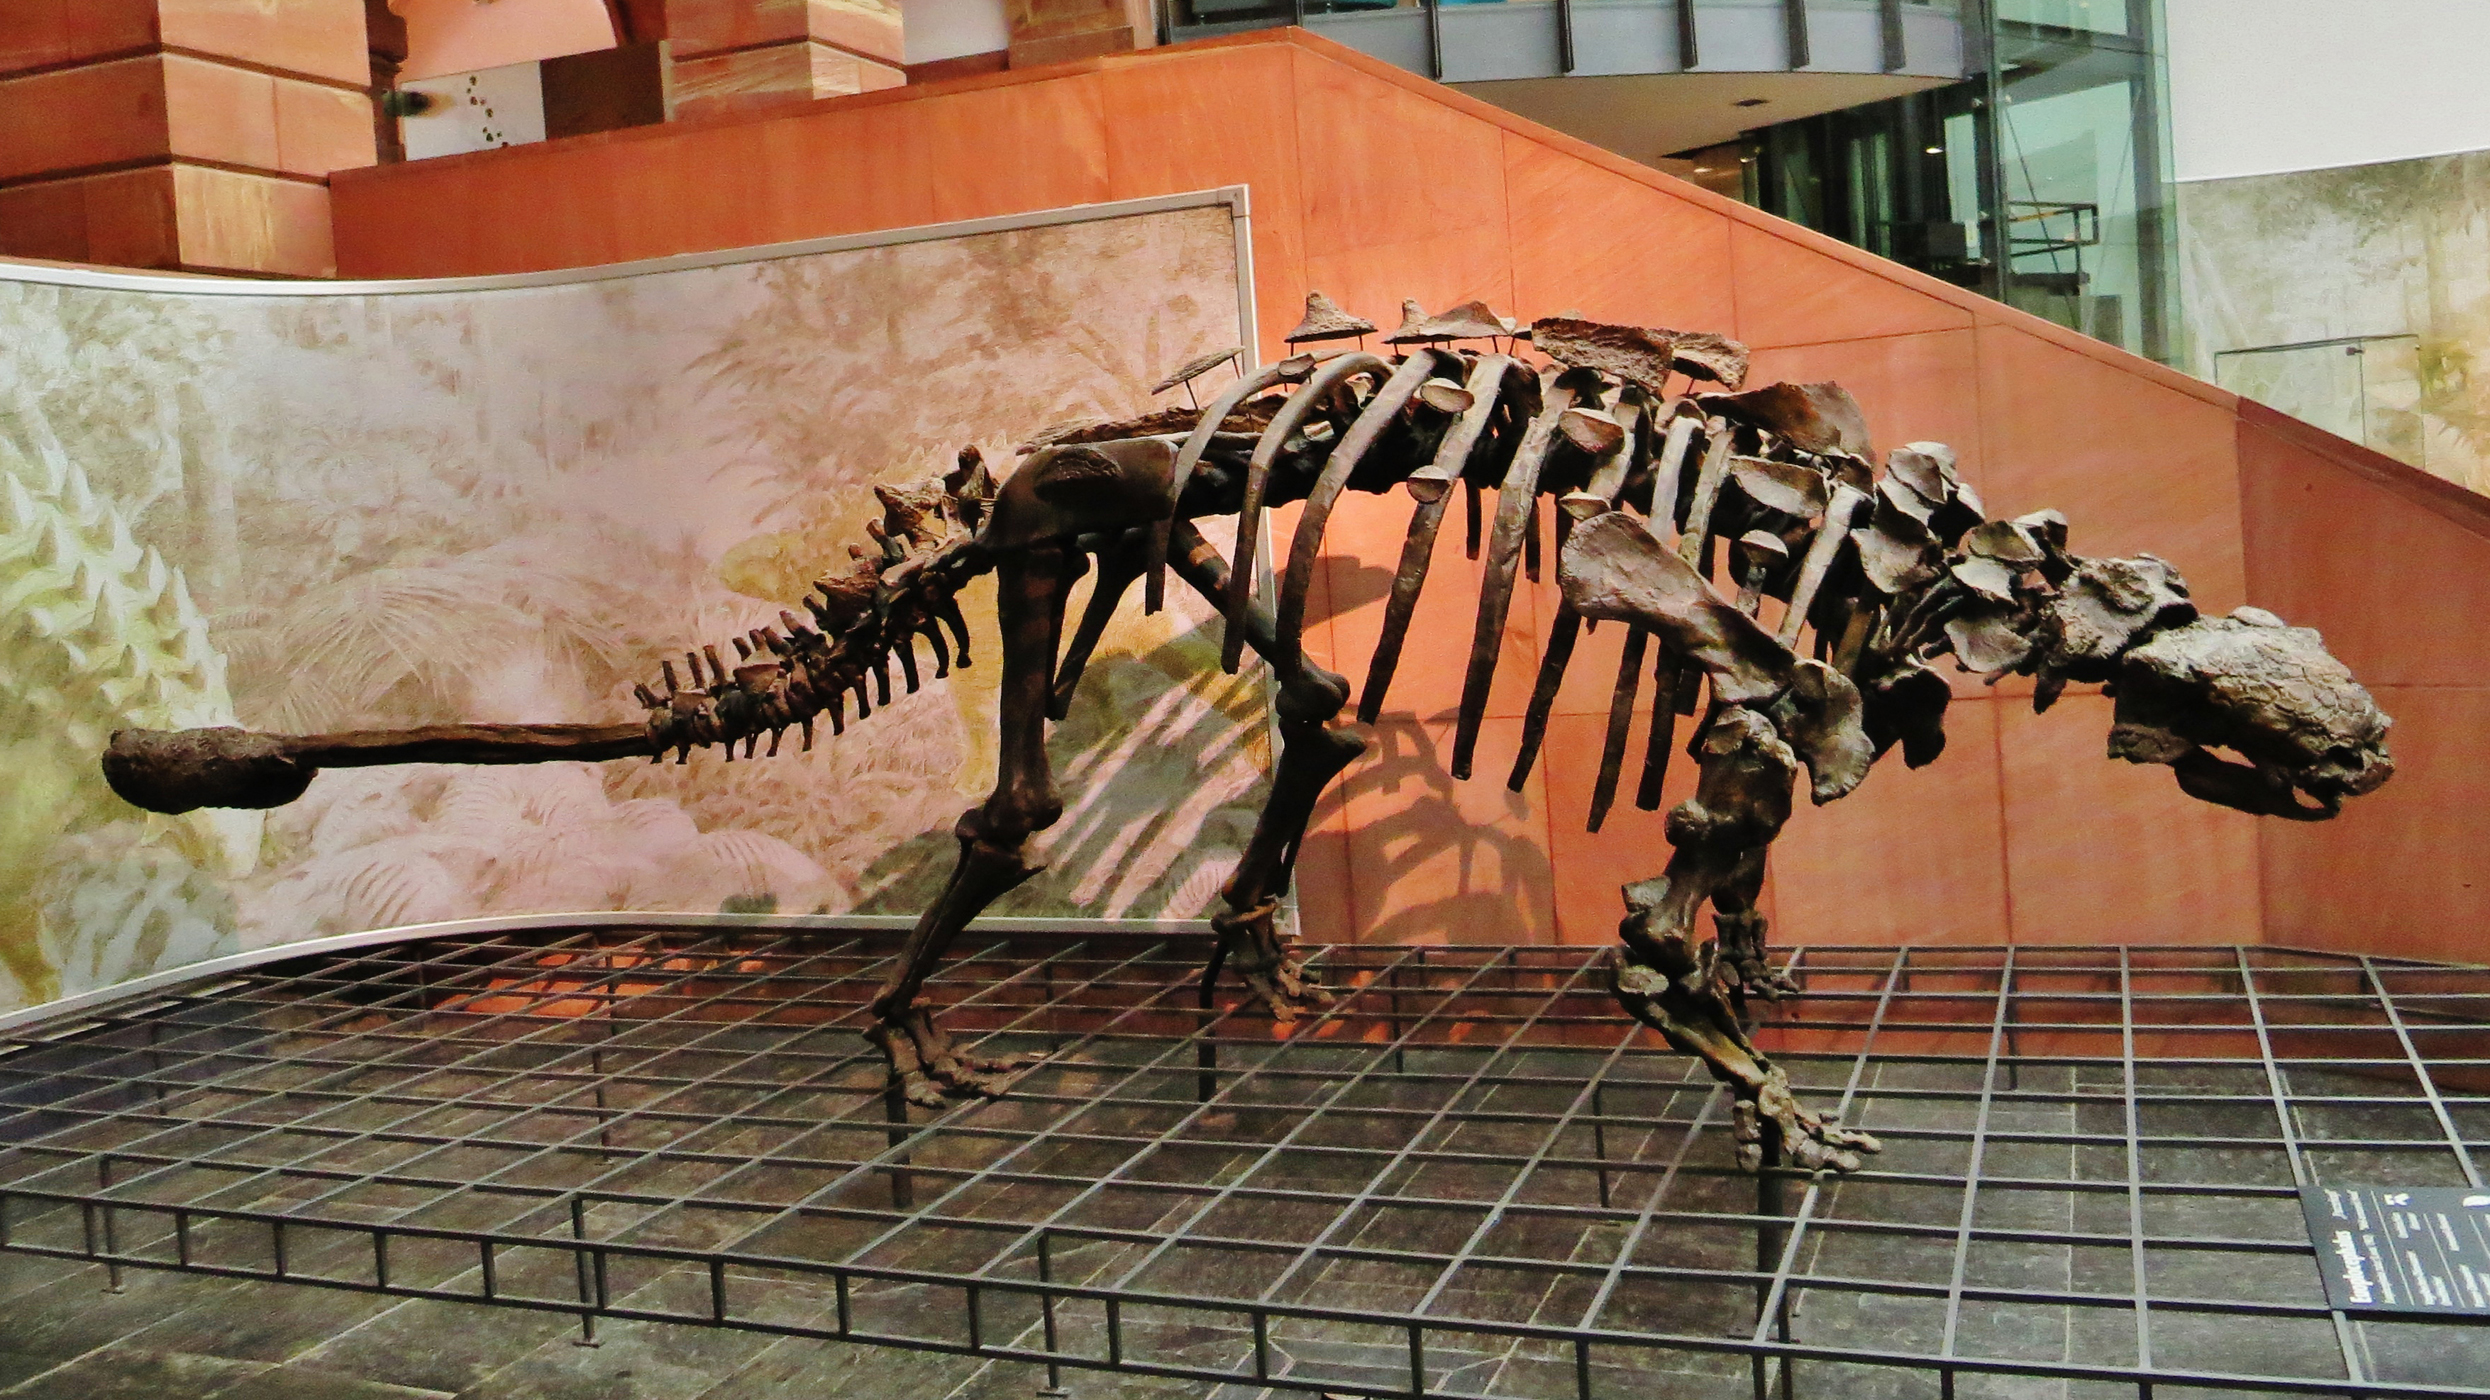 Euoplocephalus_tutus_875 Ghedoghedo Wikimedia Commons State Museum of Natural History Karlsruhe Germany.jpg